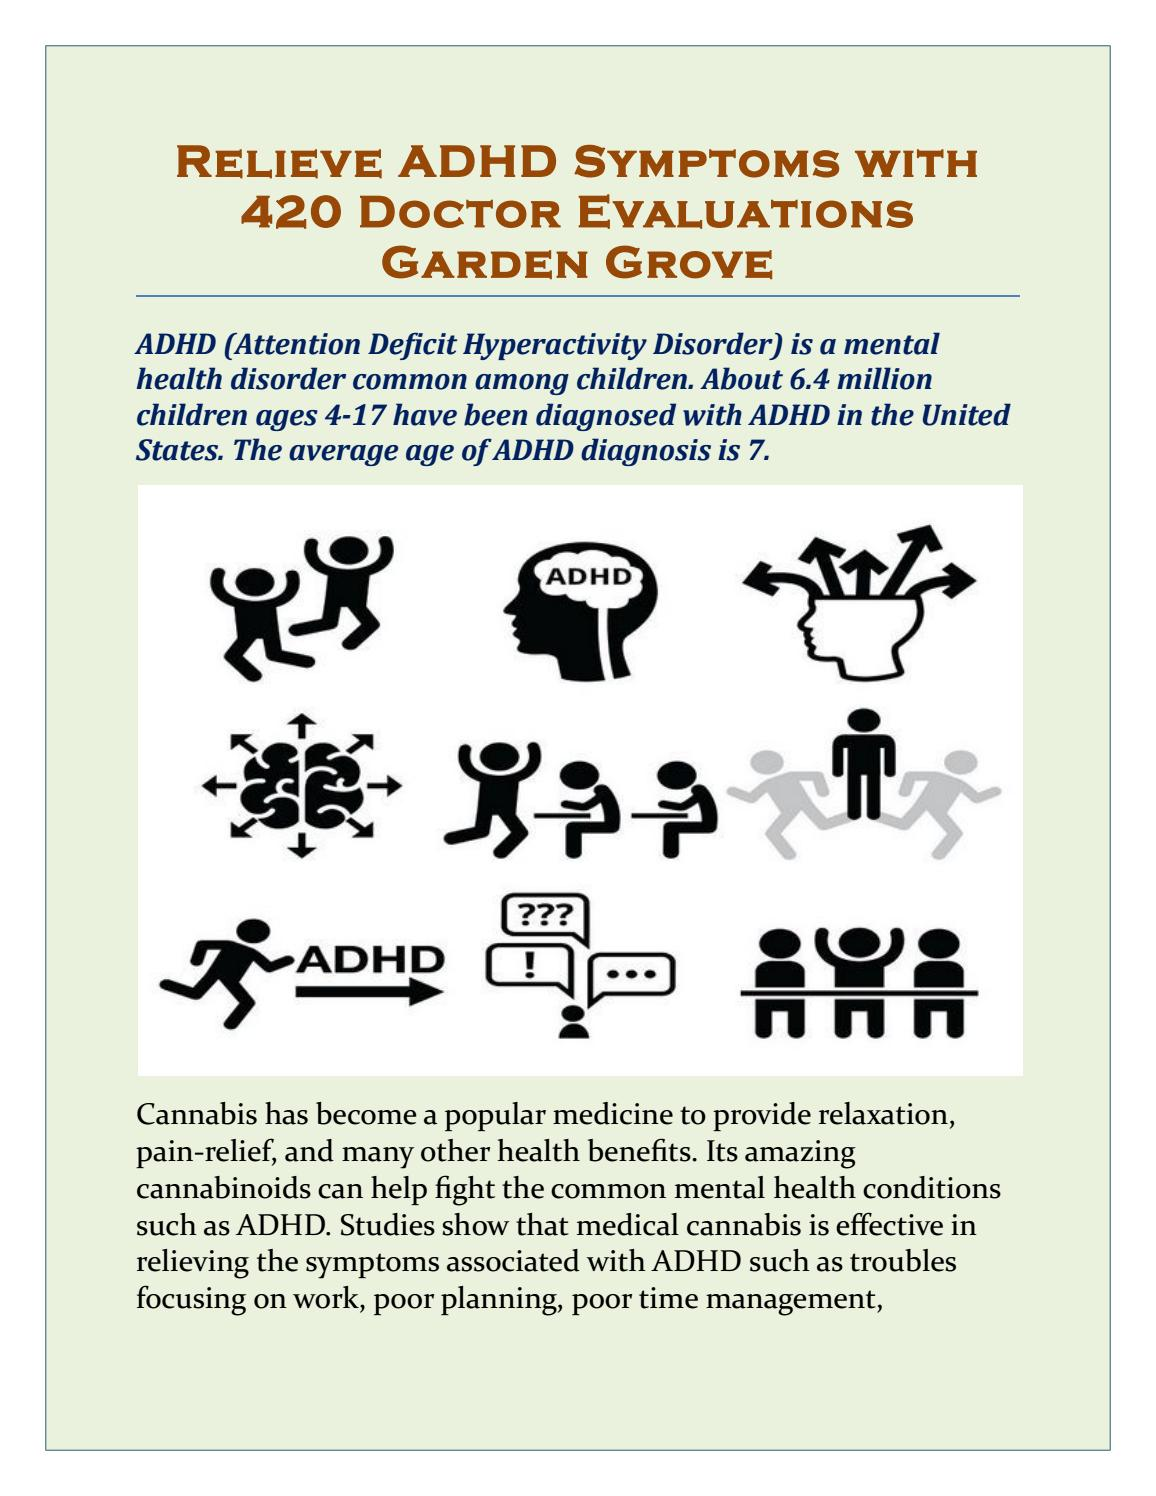 Adhd More Prevalent Among Poor >> Relieve Adhd Symptoms With 420 Doctor Evaluations Garden